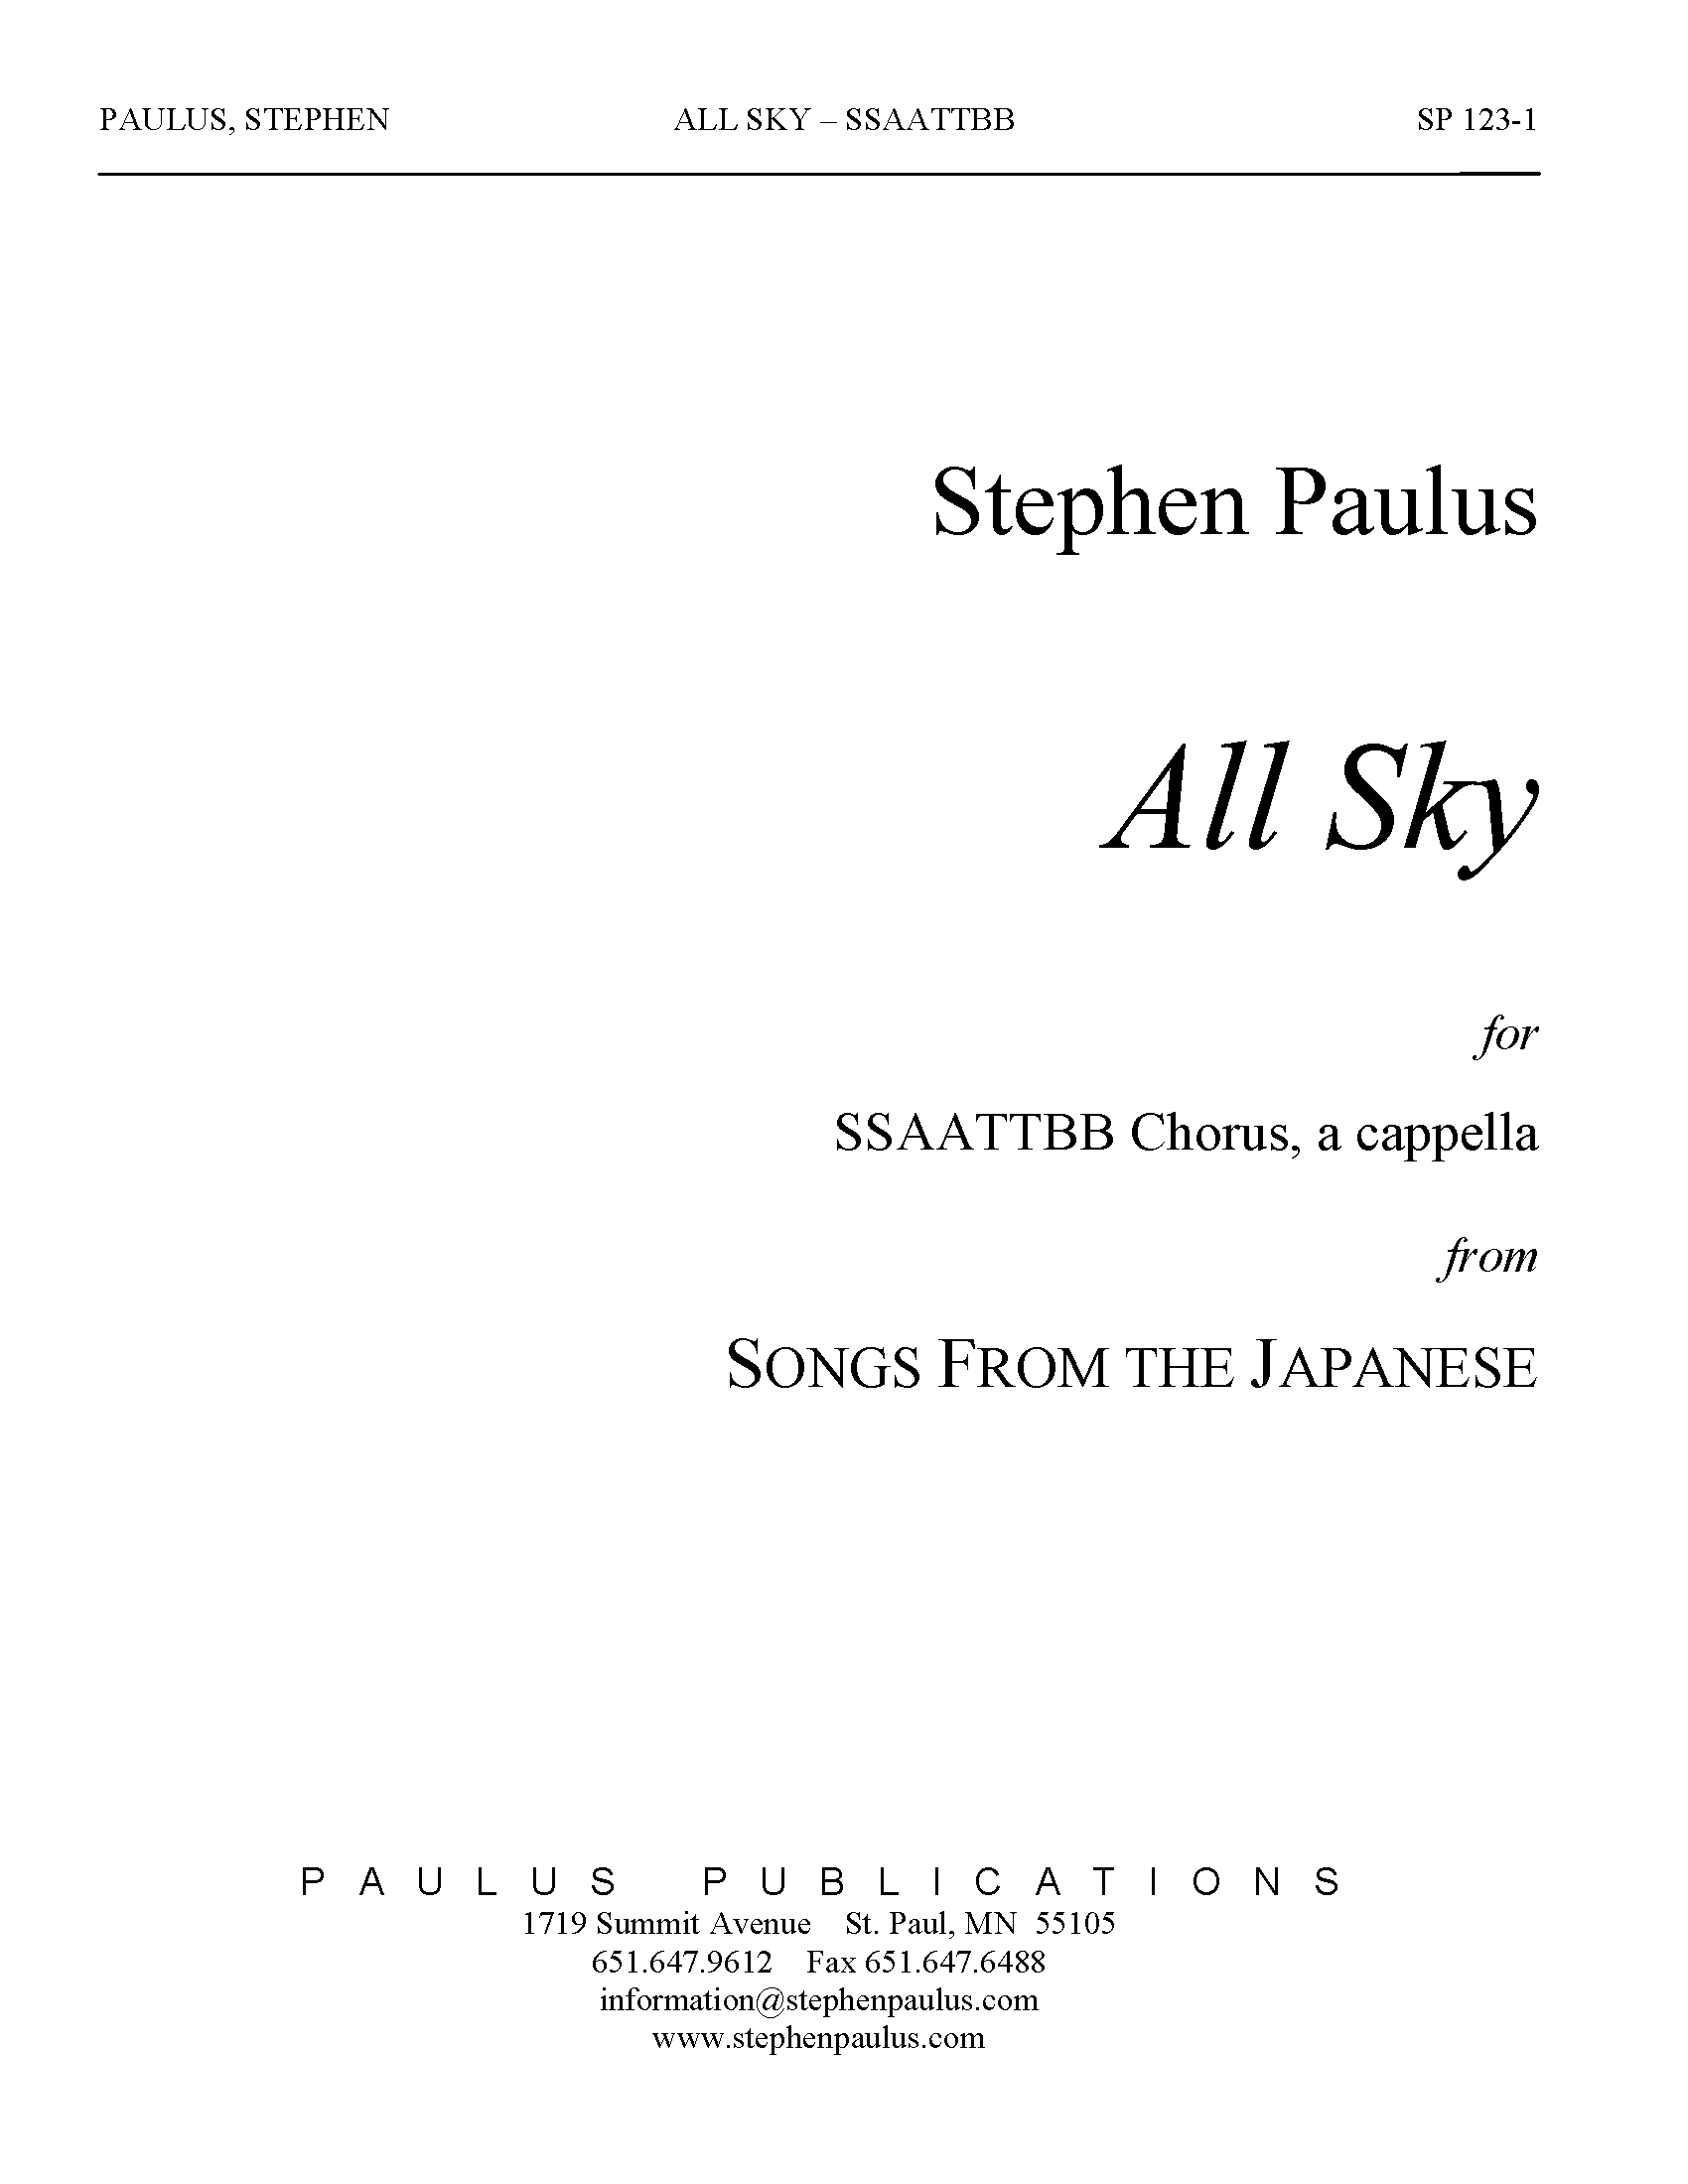 All Sky (from Songs from the Japanese) for SATB Chorus, a cappella